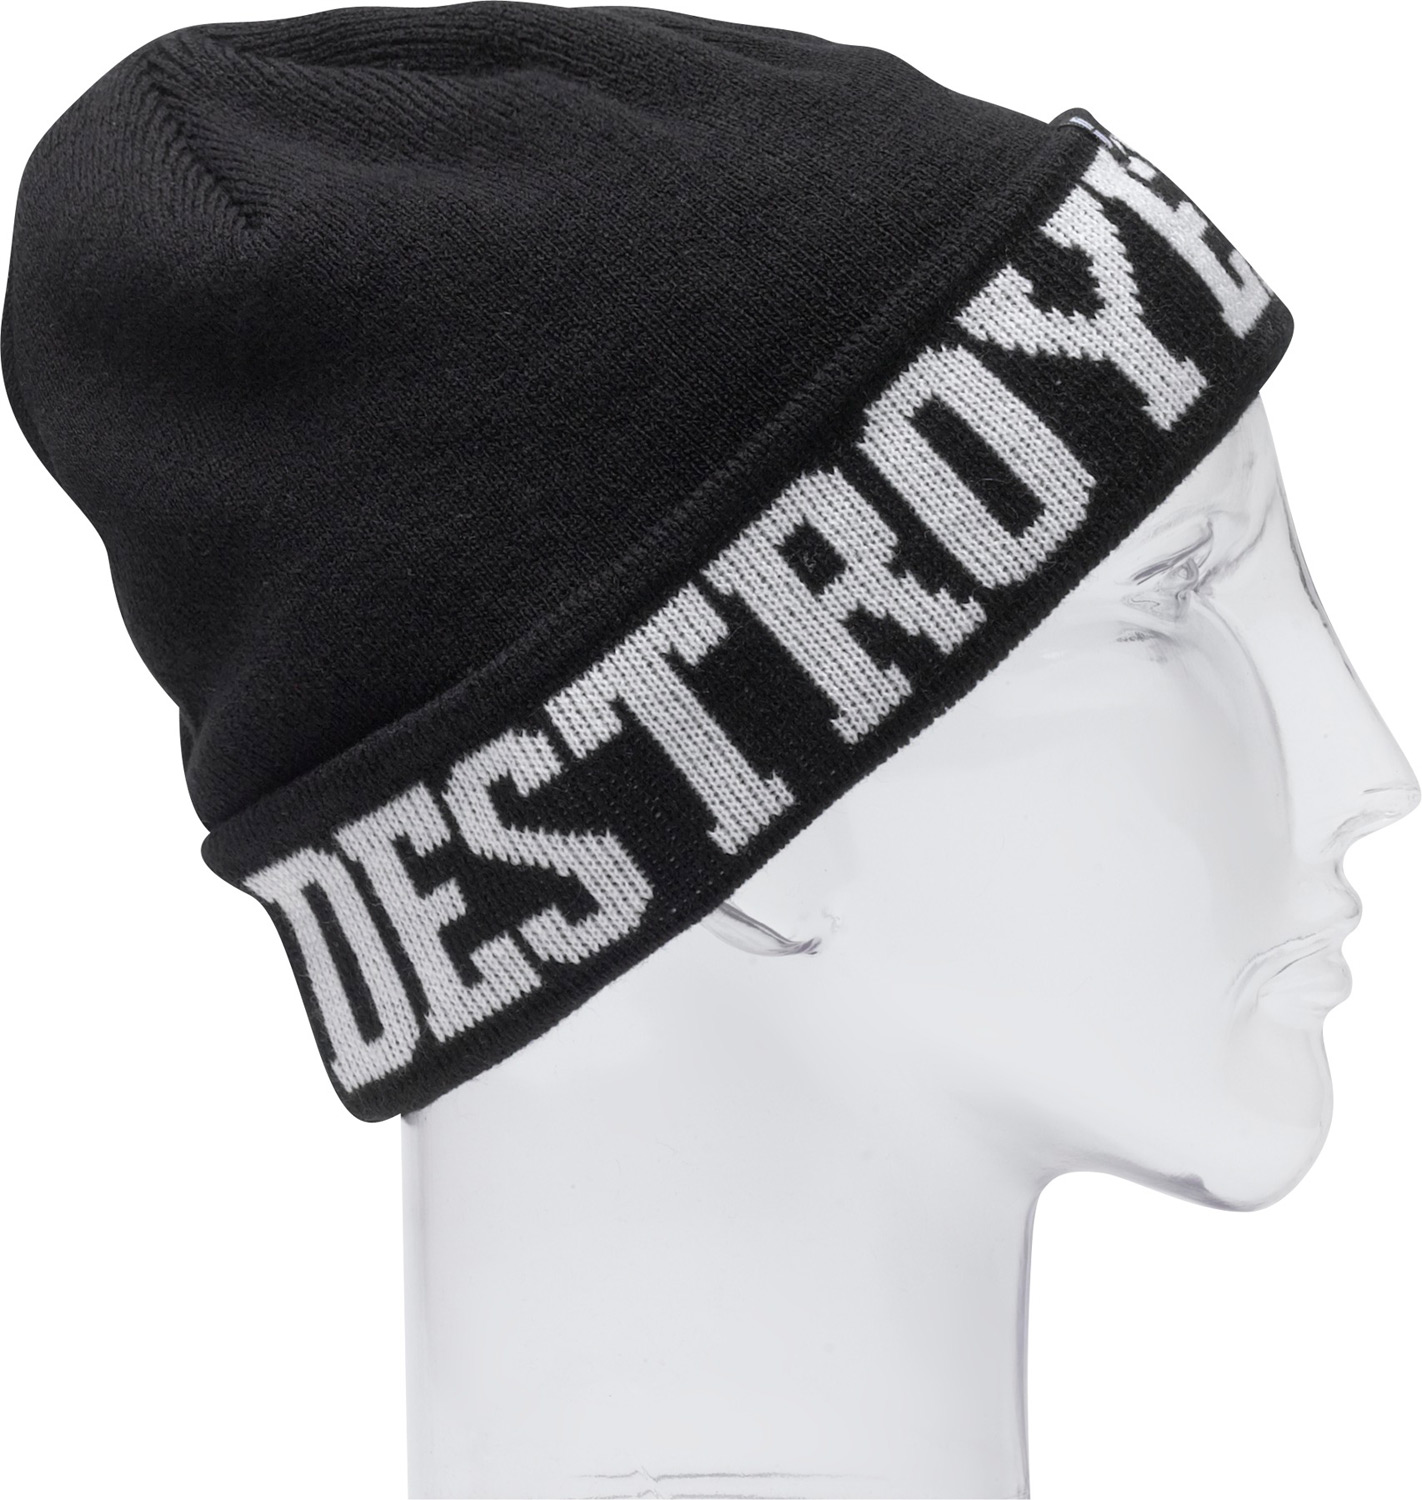 "Key Features of the Destroyer Beanie Forum: Machine knit 100% acrylic 7 1/2"" tall Fine gauge jacquard beanie One size fits all - $17.95"